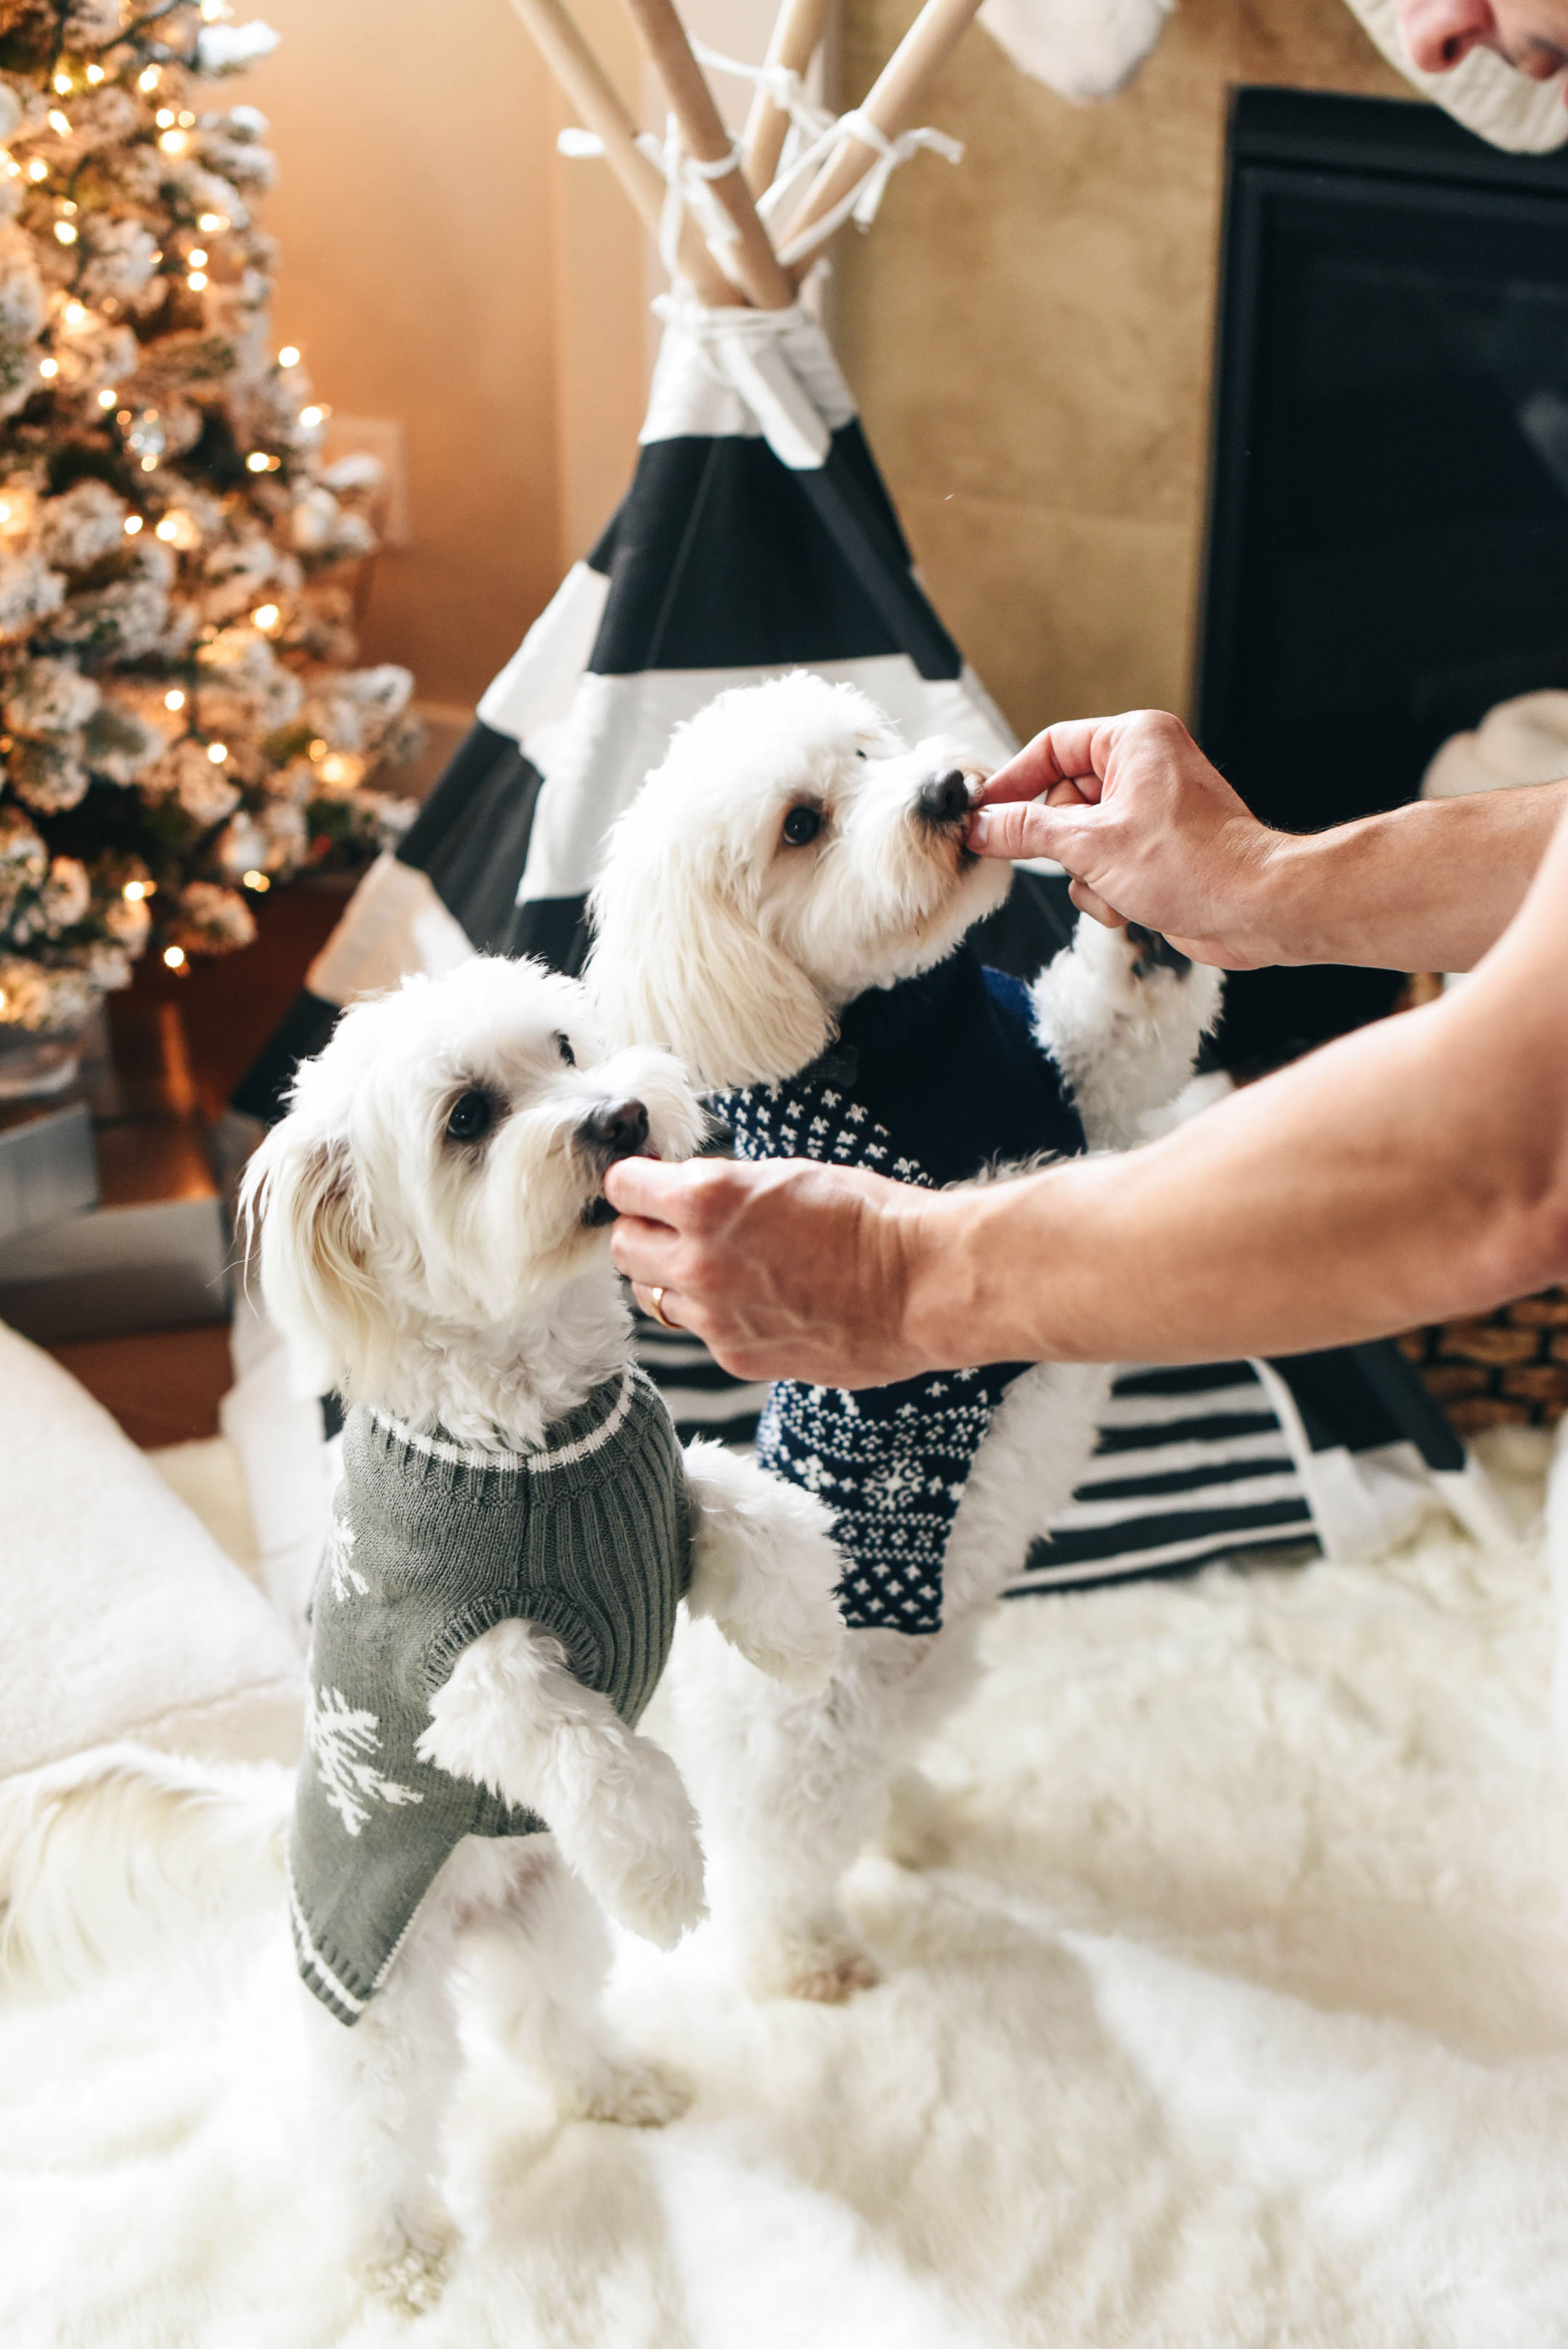 crystalin-marie-dogs-in-sweaters